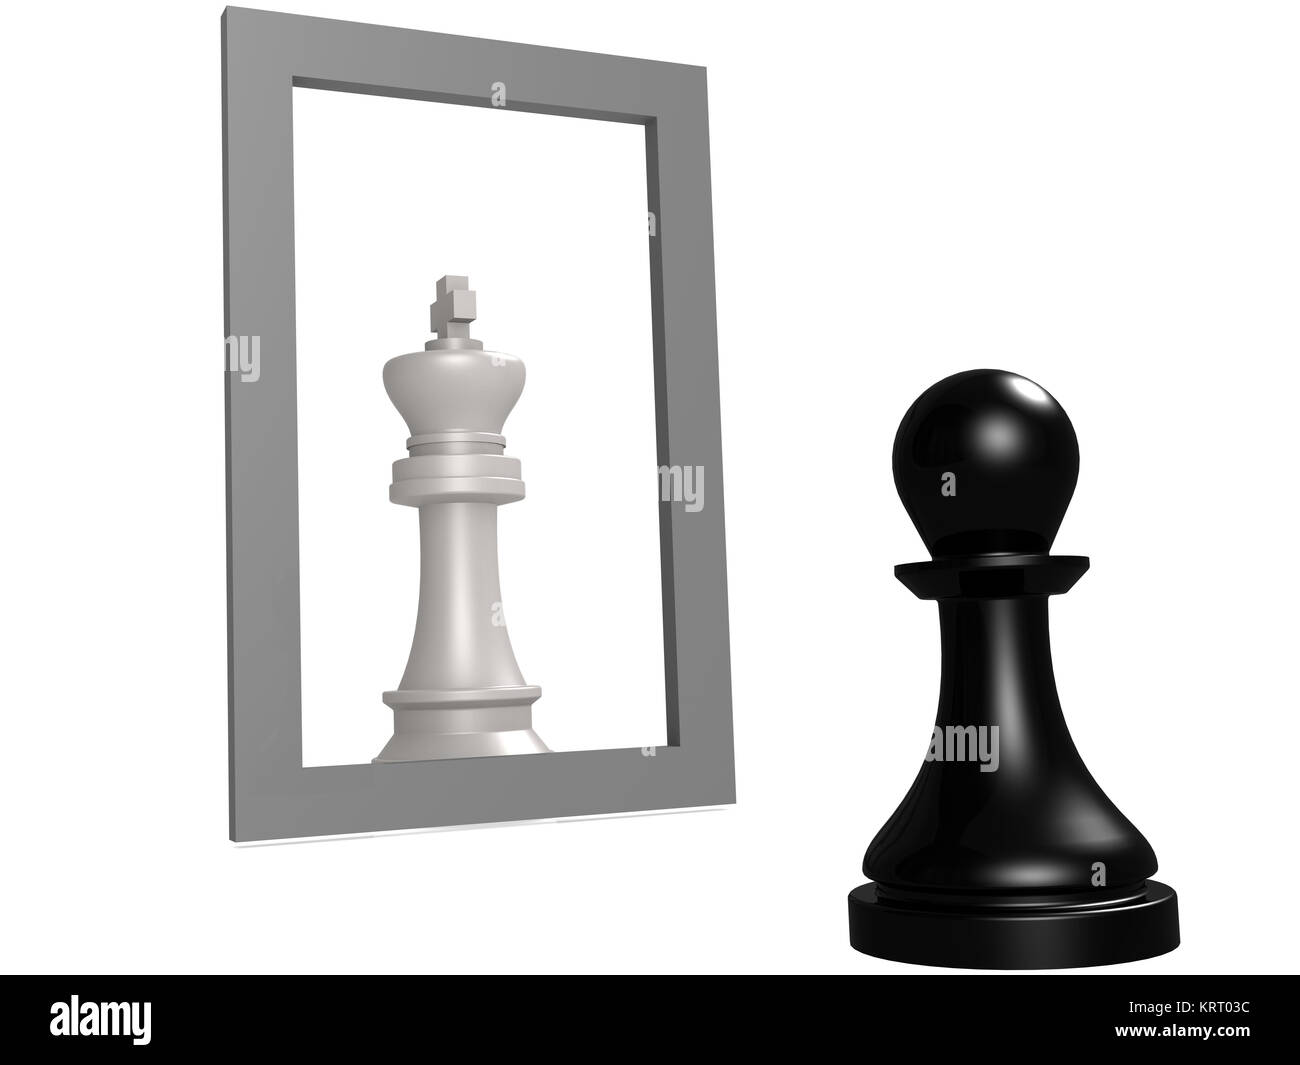 Pawn looking in the mirror seeing queen - Stock Image